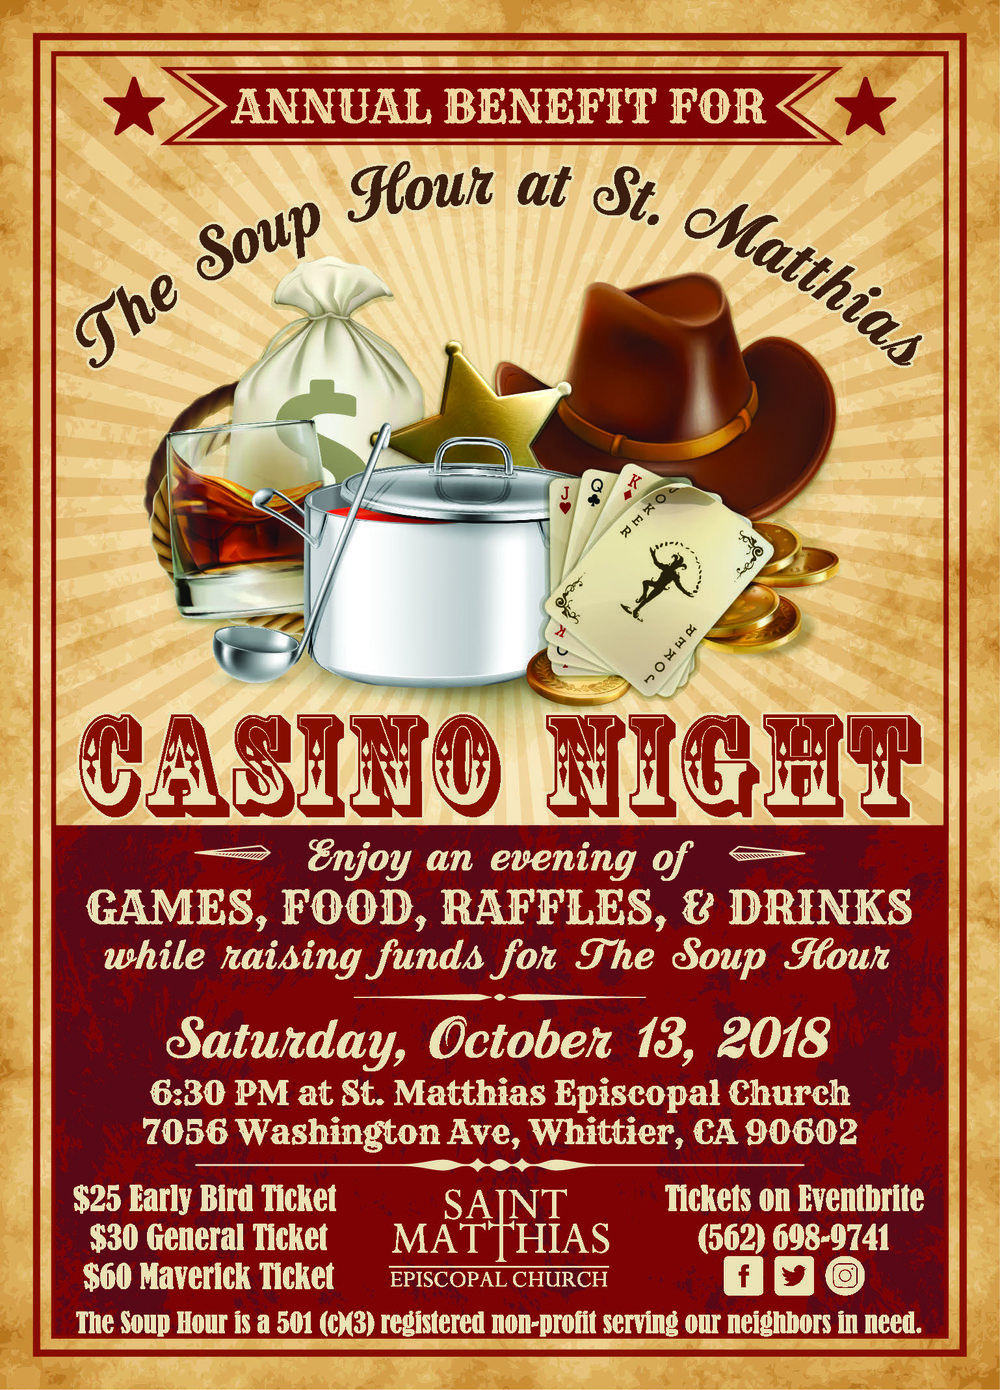 StM - Soup Hour Fundraiser Western Casino Night Invitation 5x7 PRINT.jpg